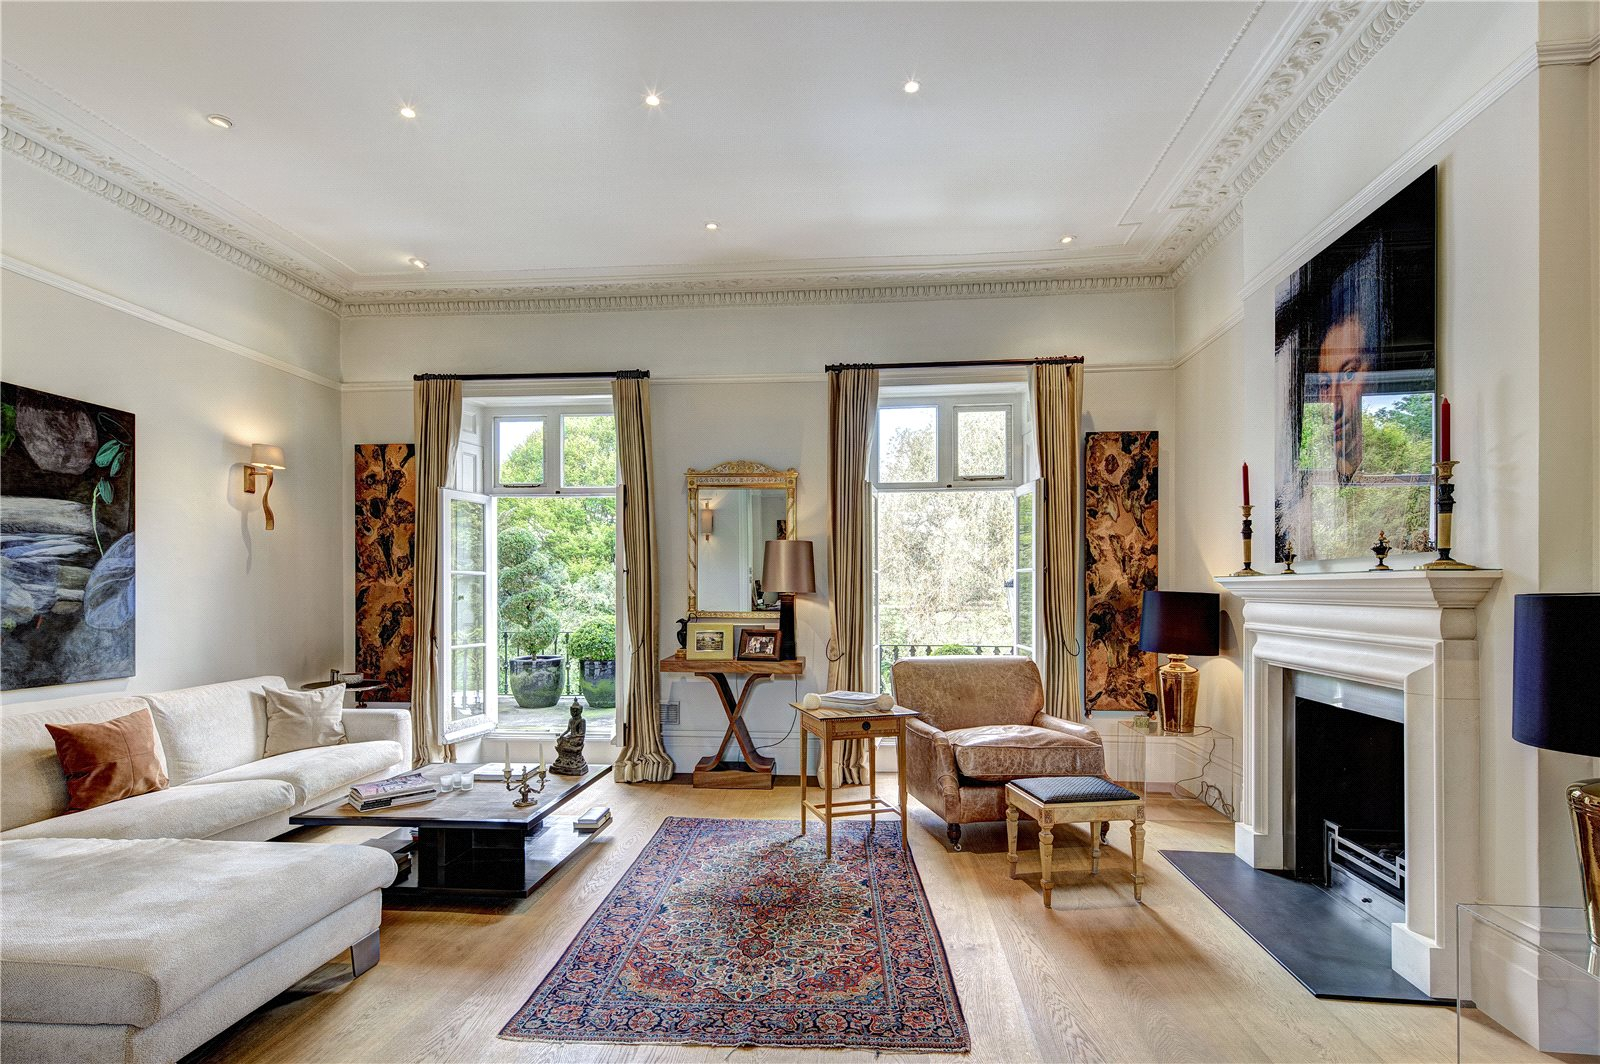 Additional photo for property listing at Ladbroke Square, Notting Hill, London, W11 Notting Hill, London, Inglaterra